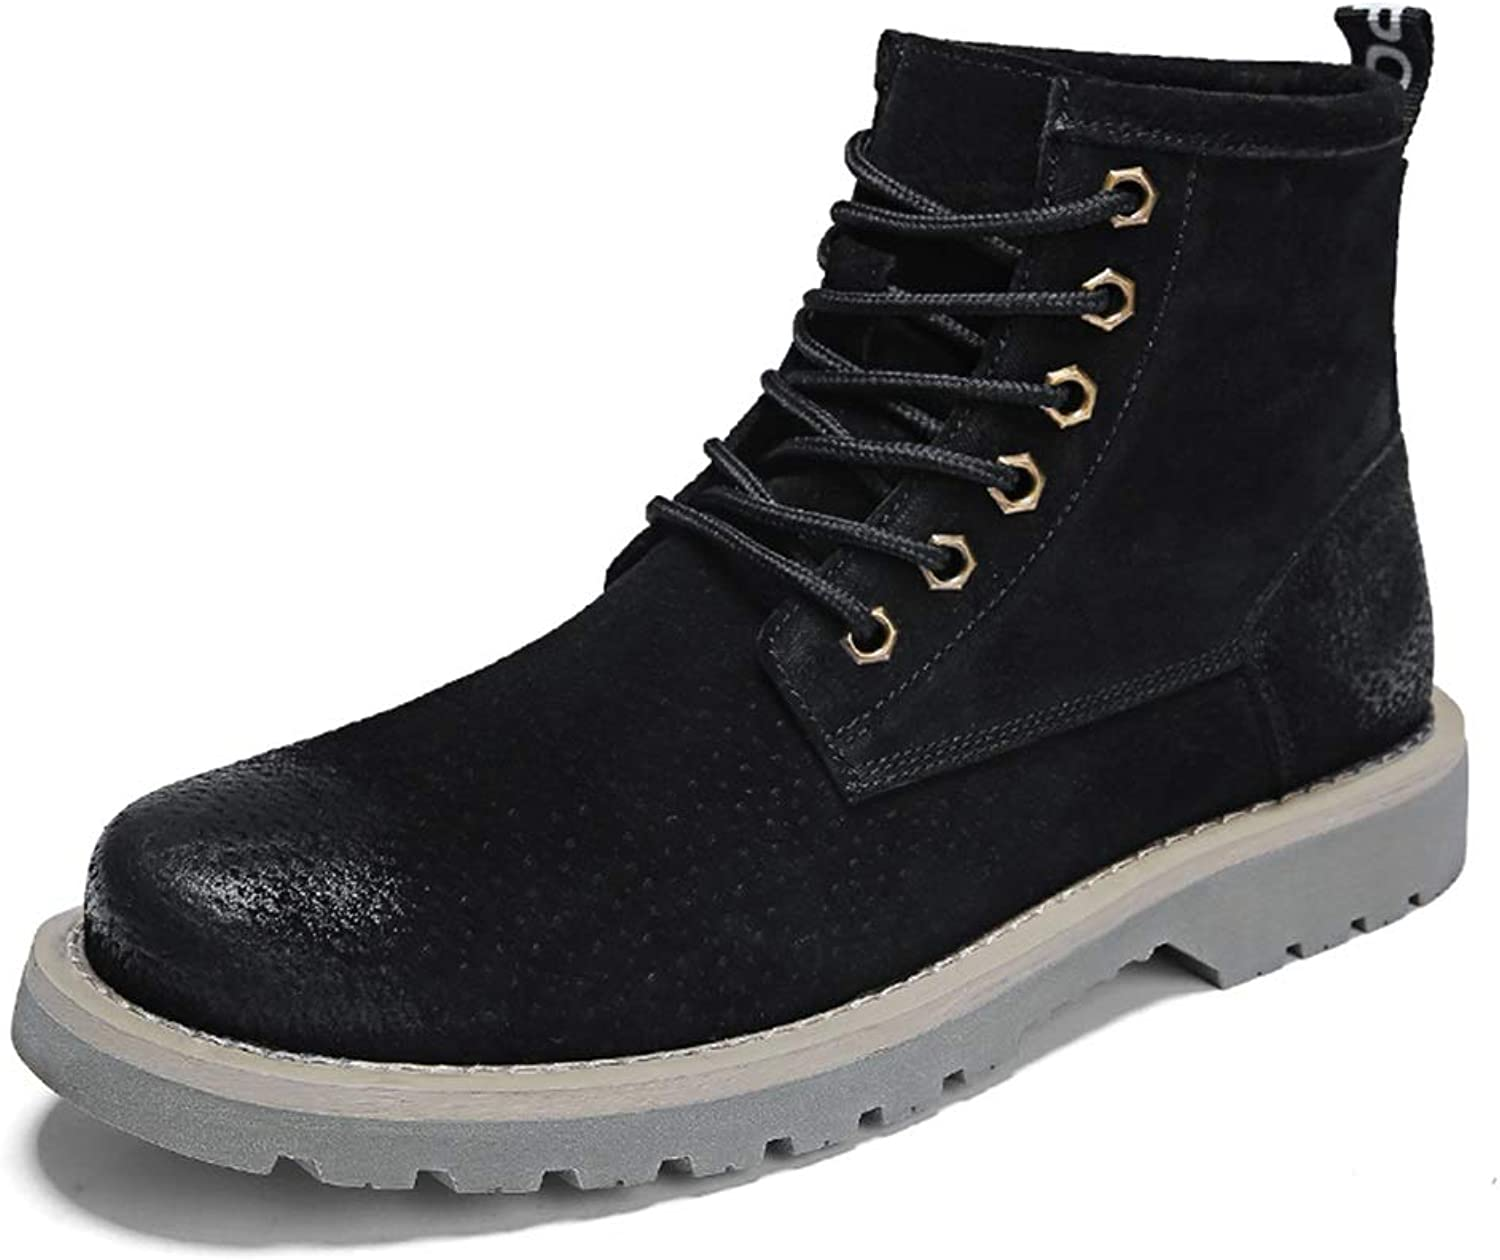 CHENJUAN shoes Men's Fashionable Ankle Boots Casual Pig Skin Fabric High Top Fleece Lined Boots(Conventional Optional)